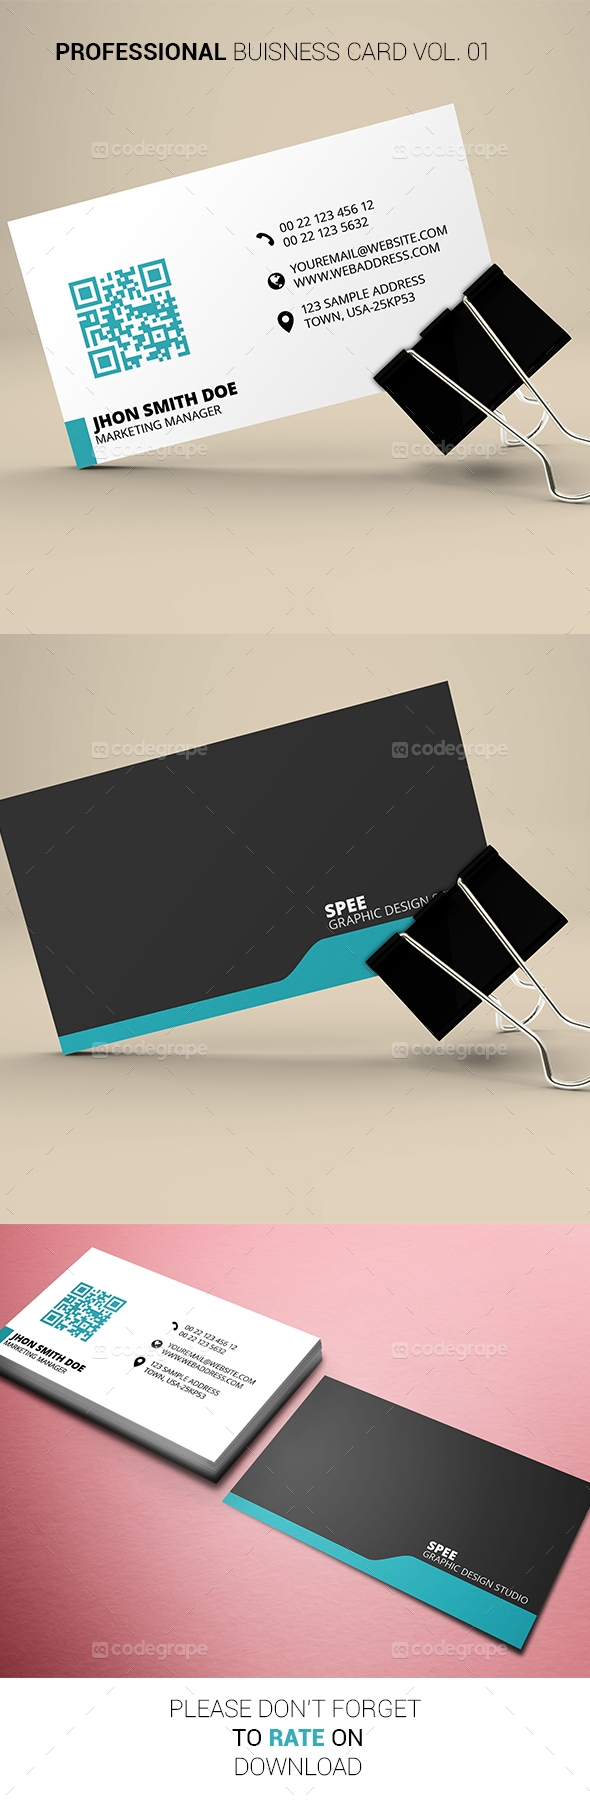 Professional Business card Vol. 01